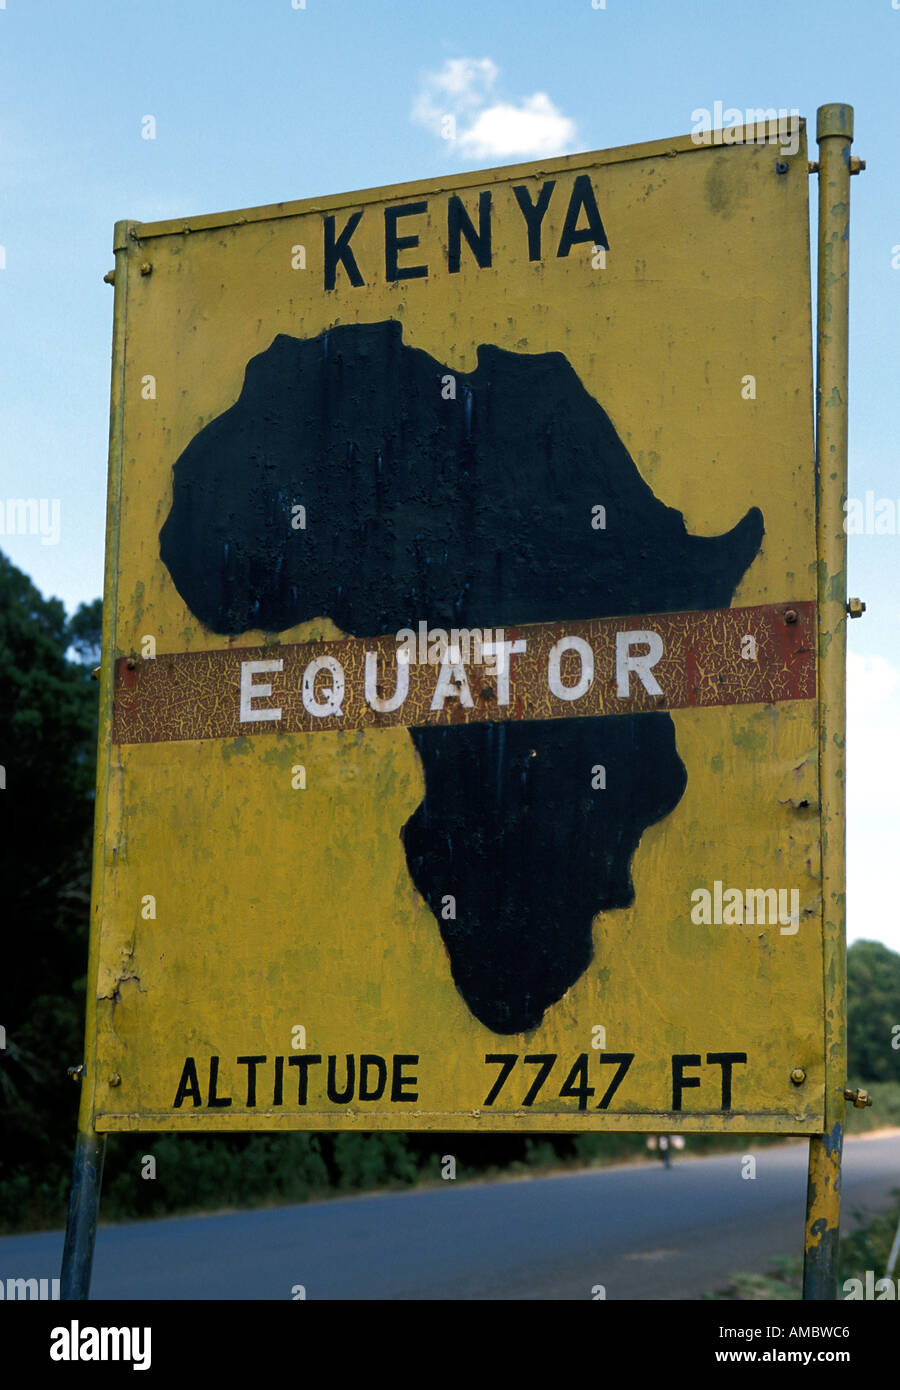 286fed42726 Crossing The Equator Stock Photos   Crossing The Equator Stock ...